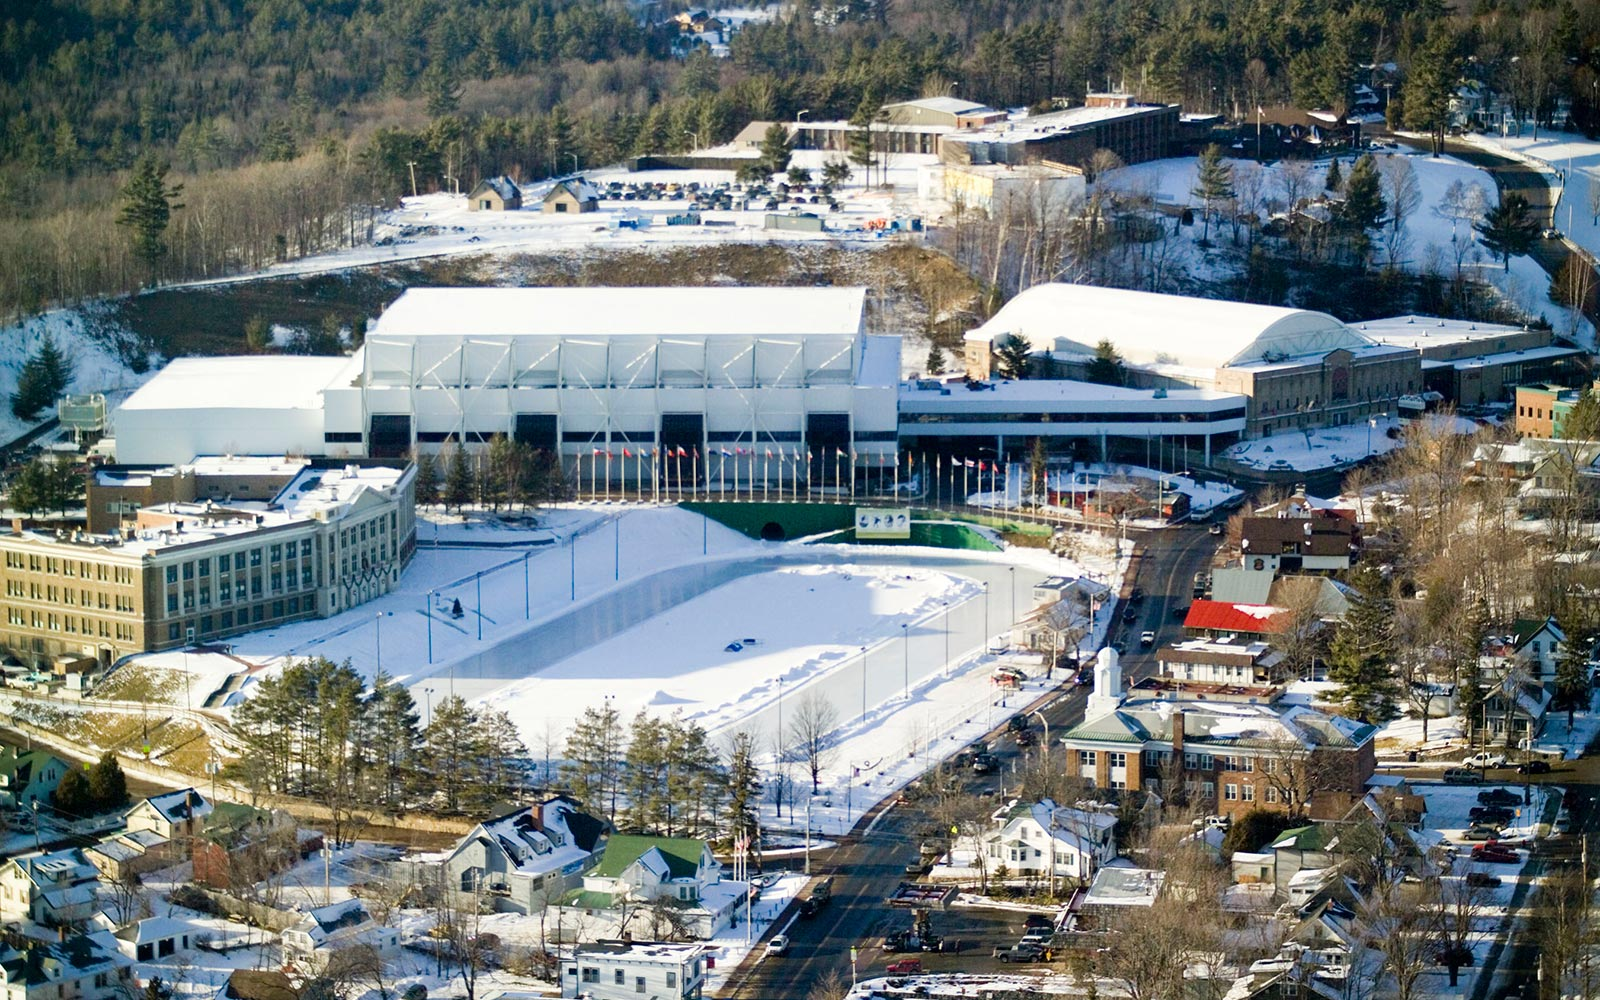 Aerial view of Olympic center